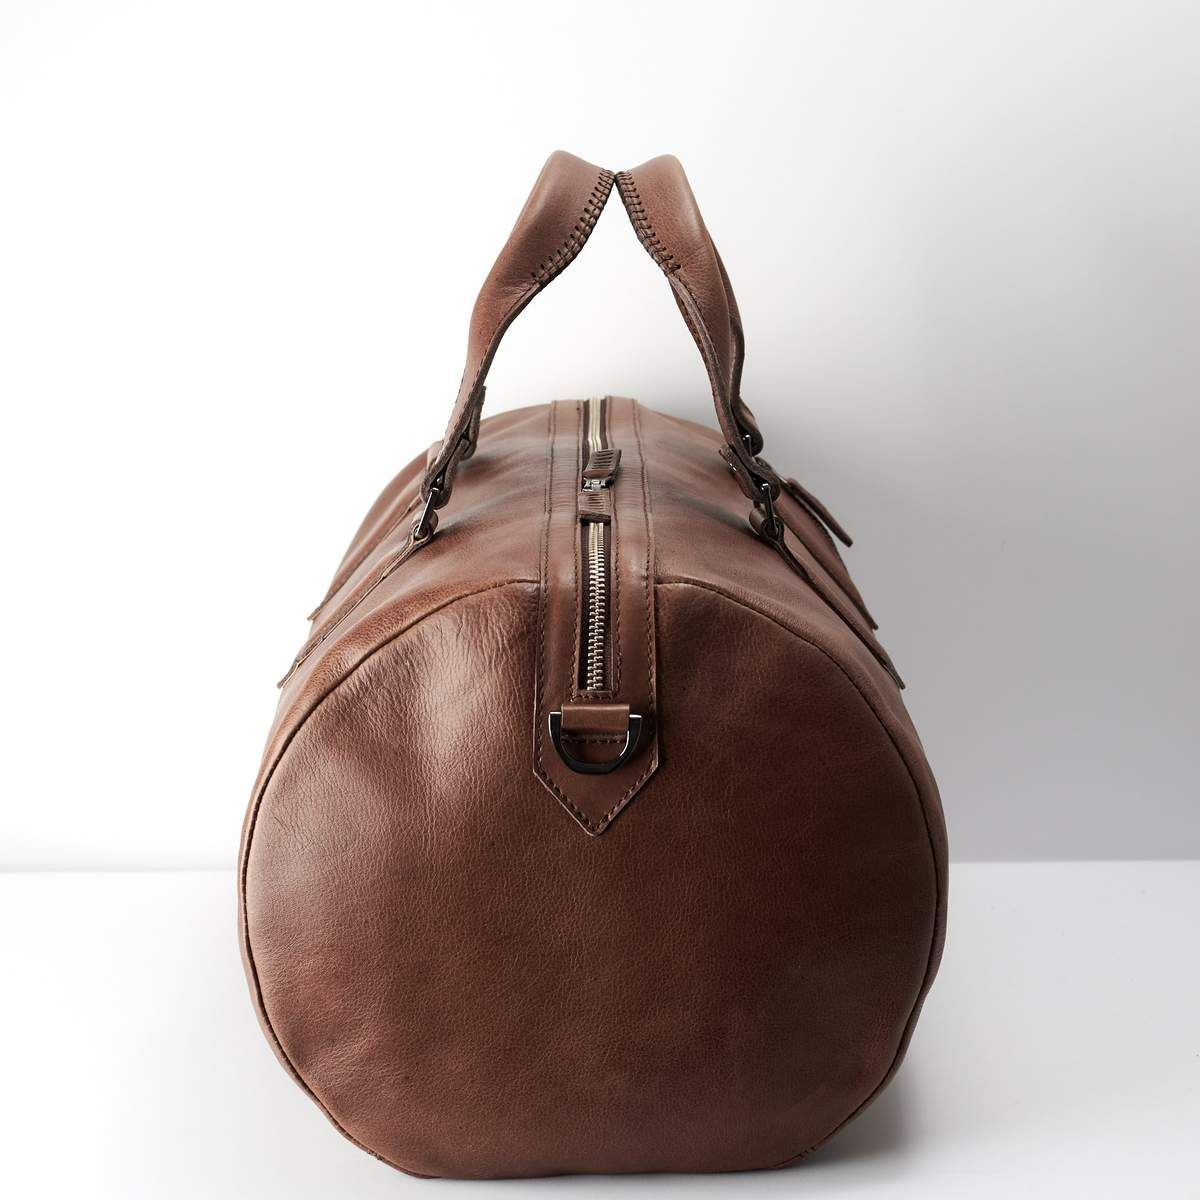 Angle. Brown Duffle Bag, Air Line Carry-on Size. Cabin